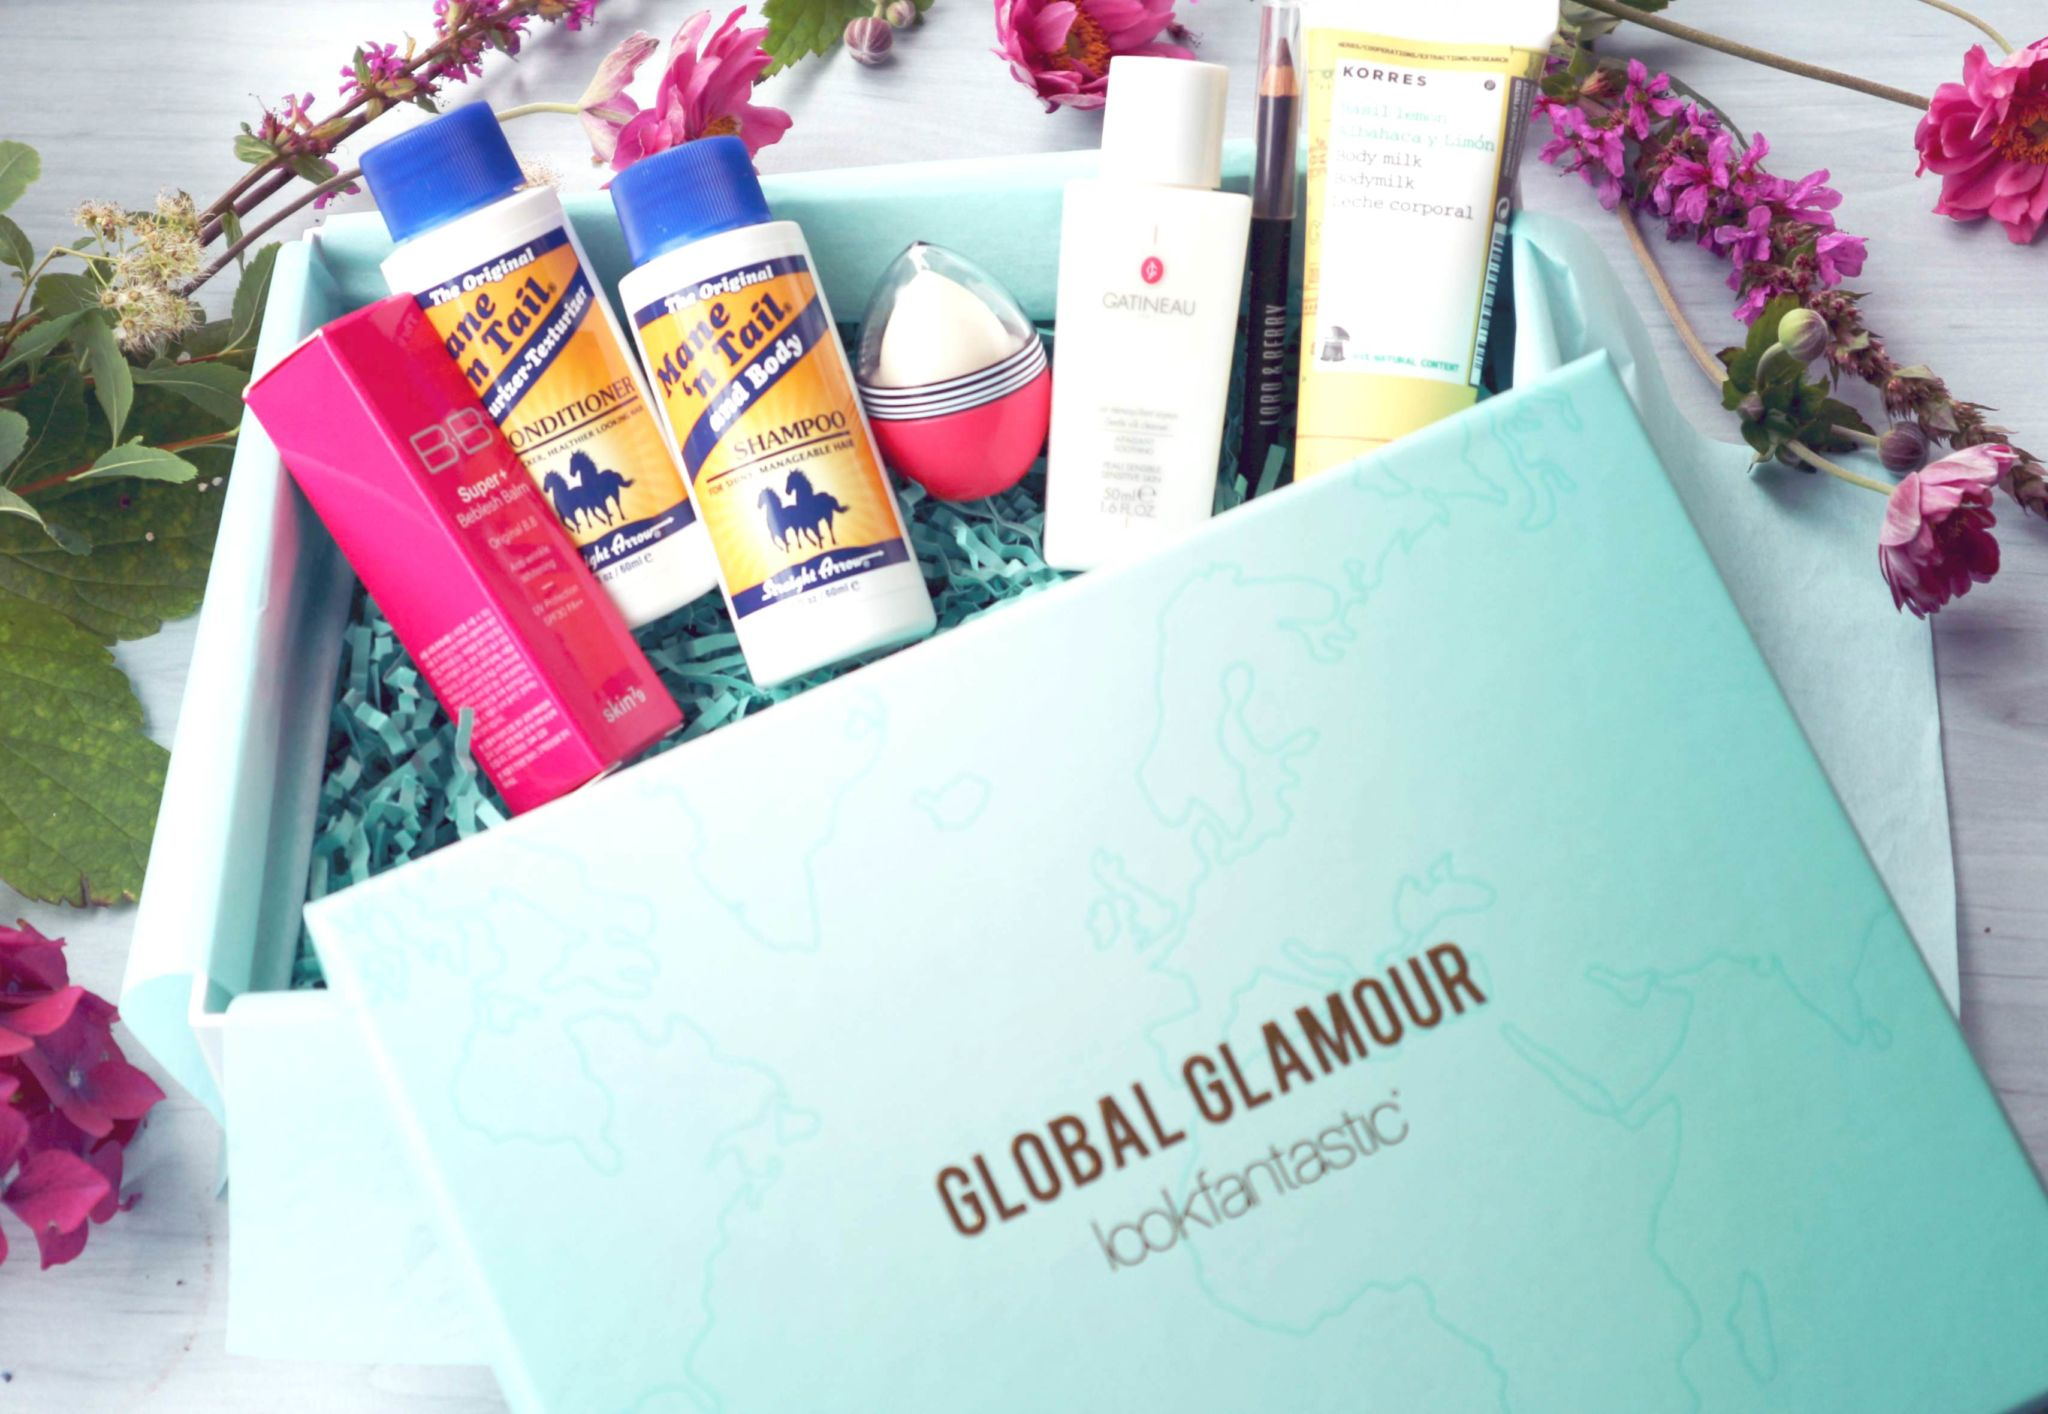 Lookfantastic Beauty Box August 2017 Global Glamour Unboxing Review